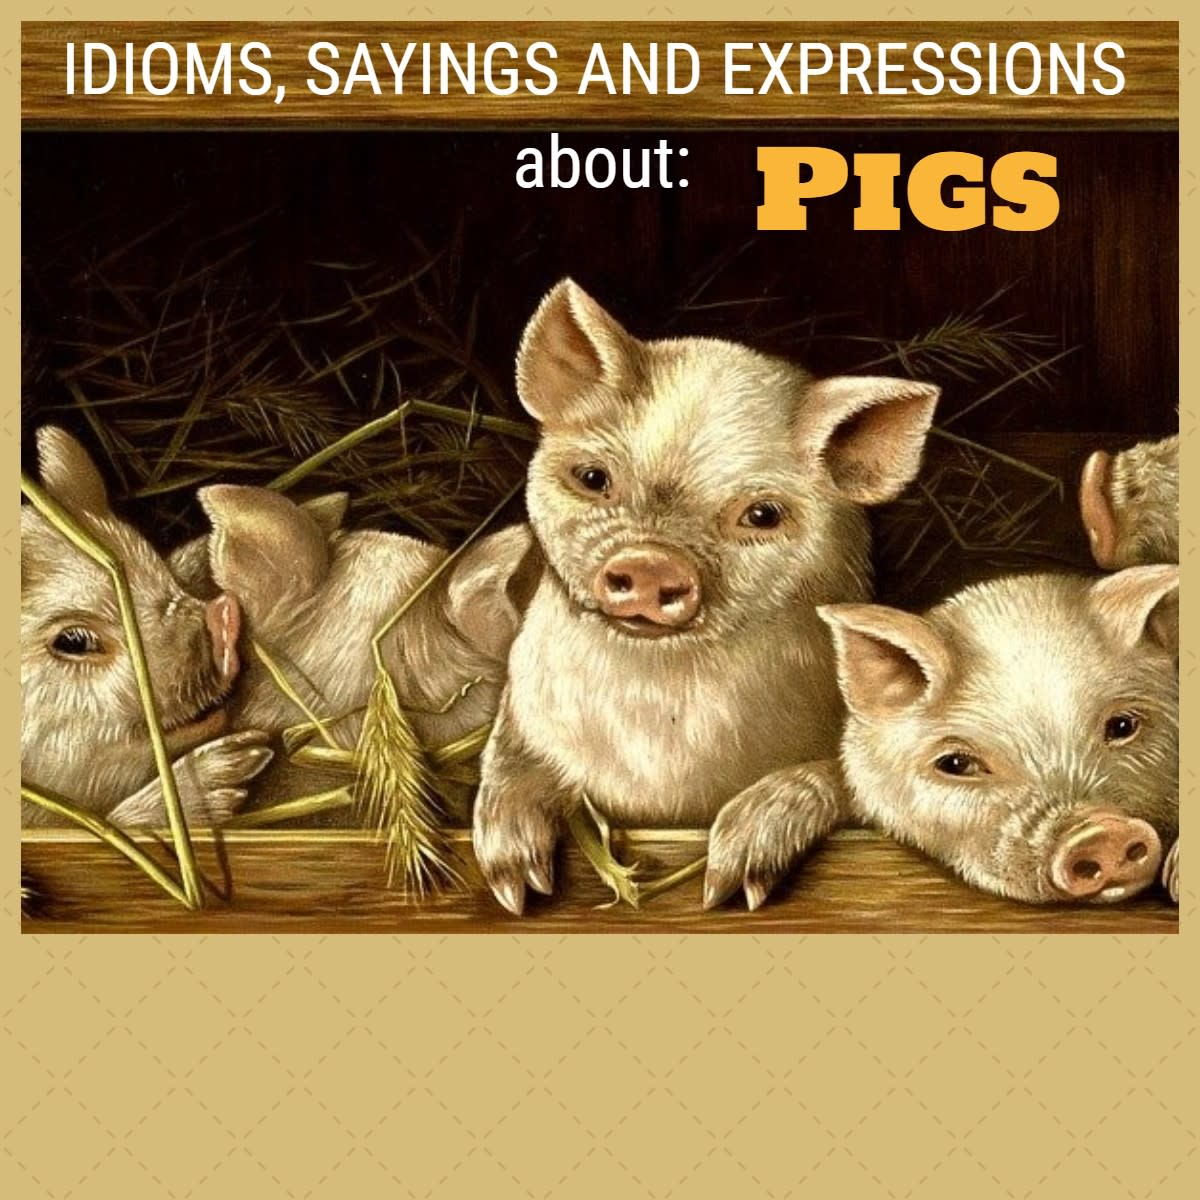 Pig Idioms and Phrases